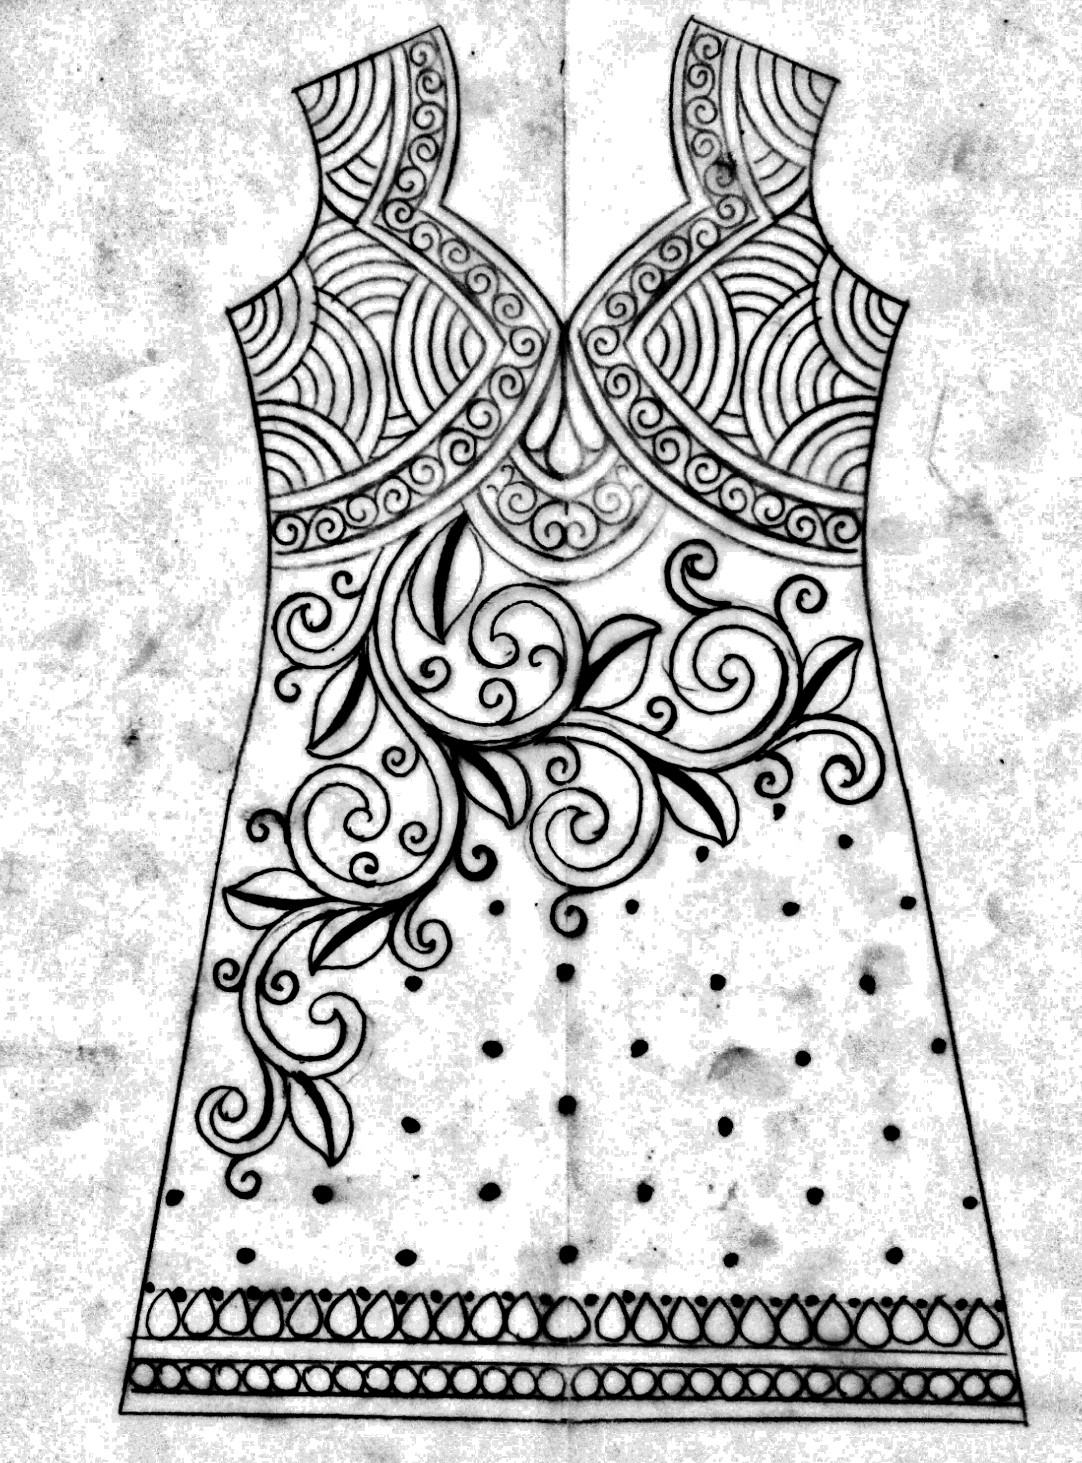 Hand embroidery dress design drawing for fashion design/how to draw fashion designer Dress/kameez design drawing.